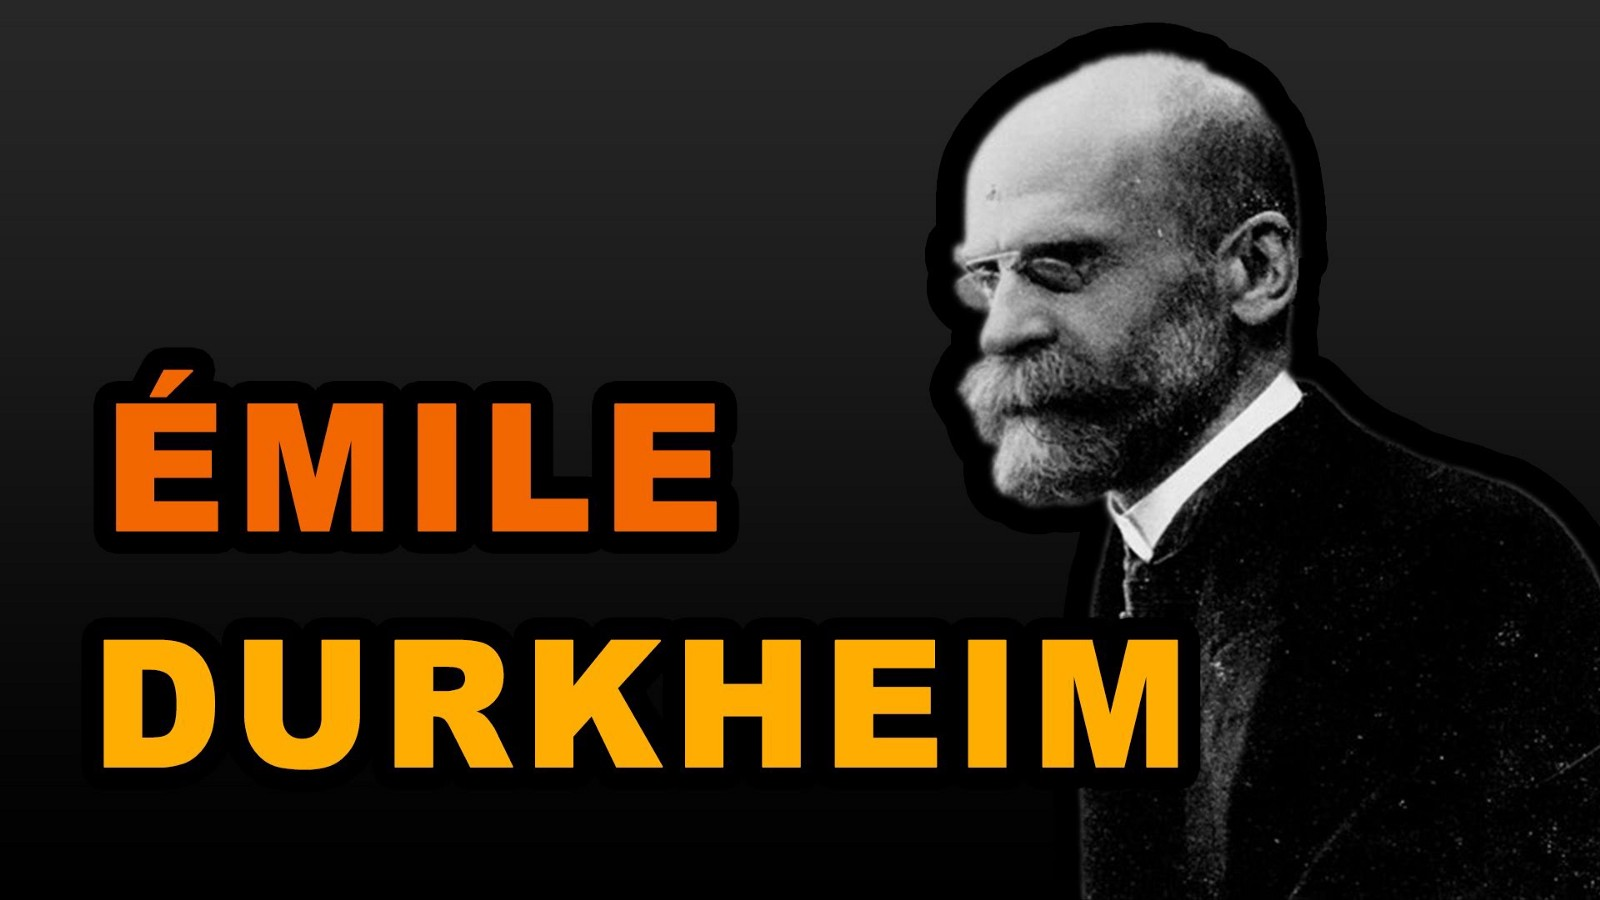 thesis durkheim dead View and download emile durkheim essays examples also discover topics, titles, outlines, thesis statements, and conclusions for your emile durkheim essay.